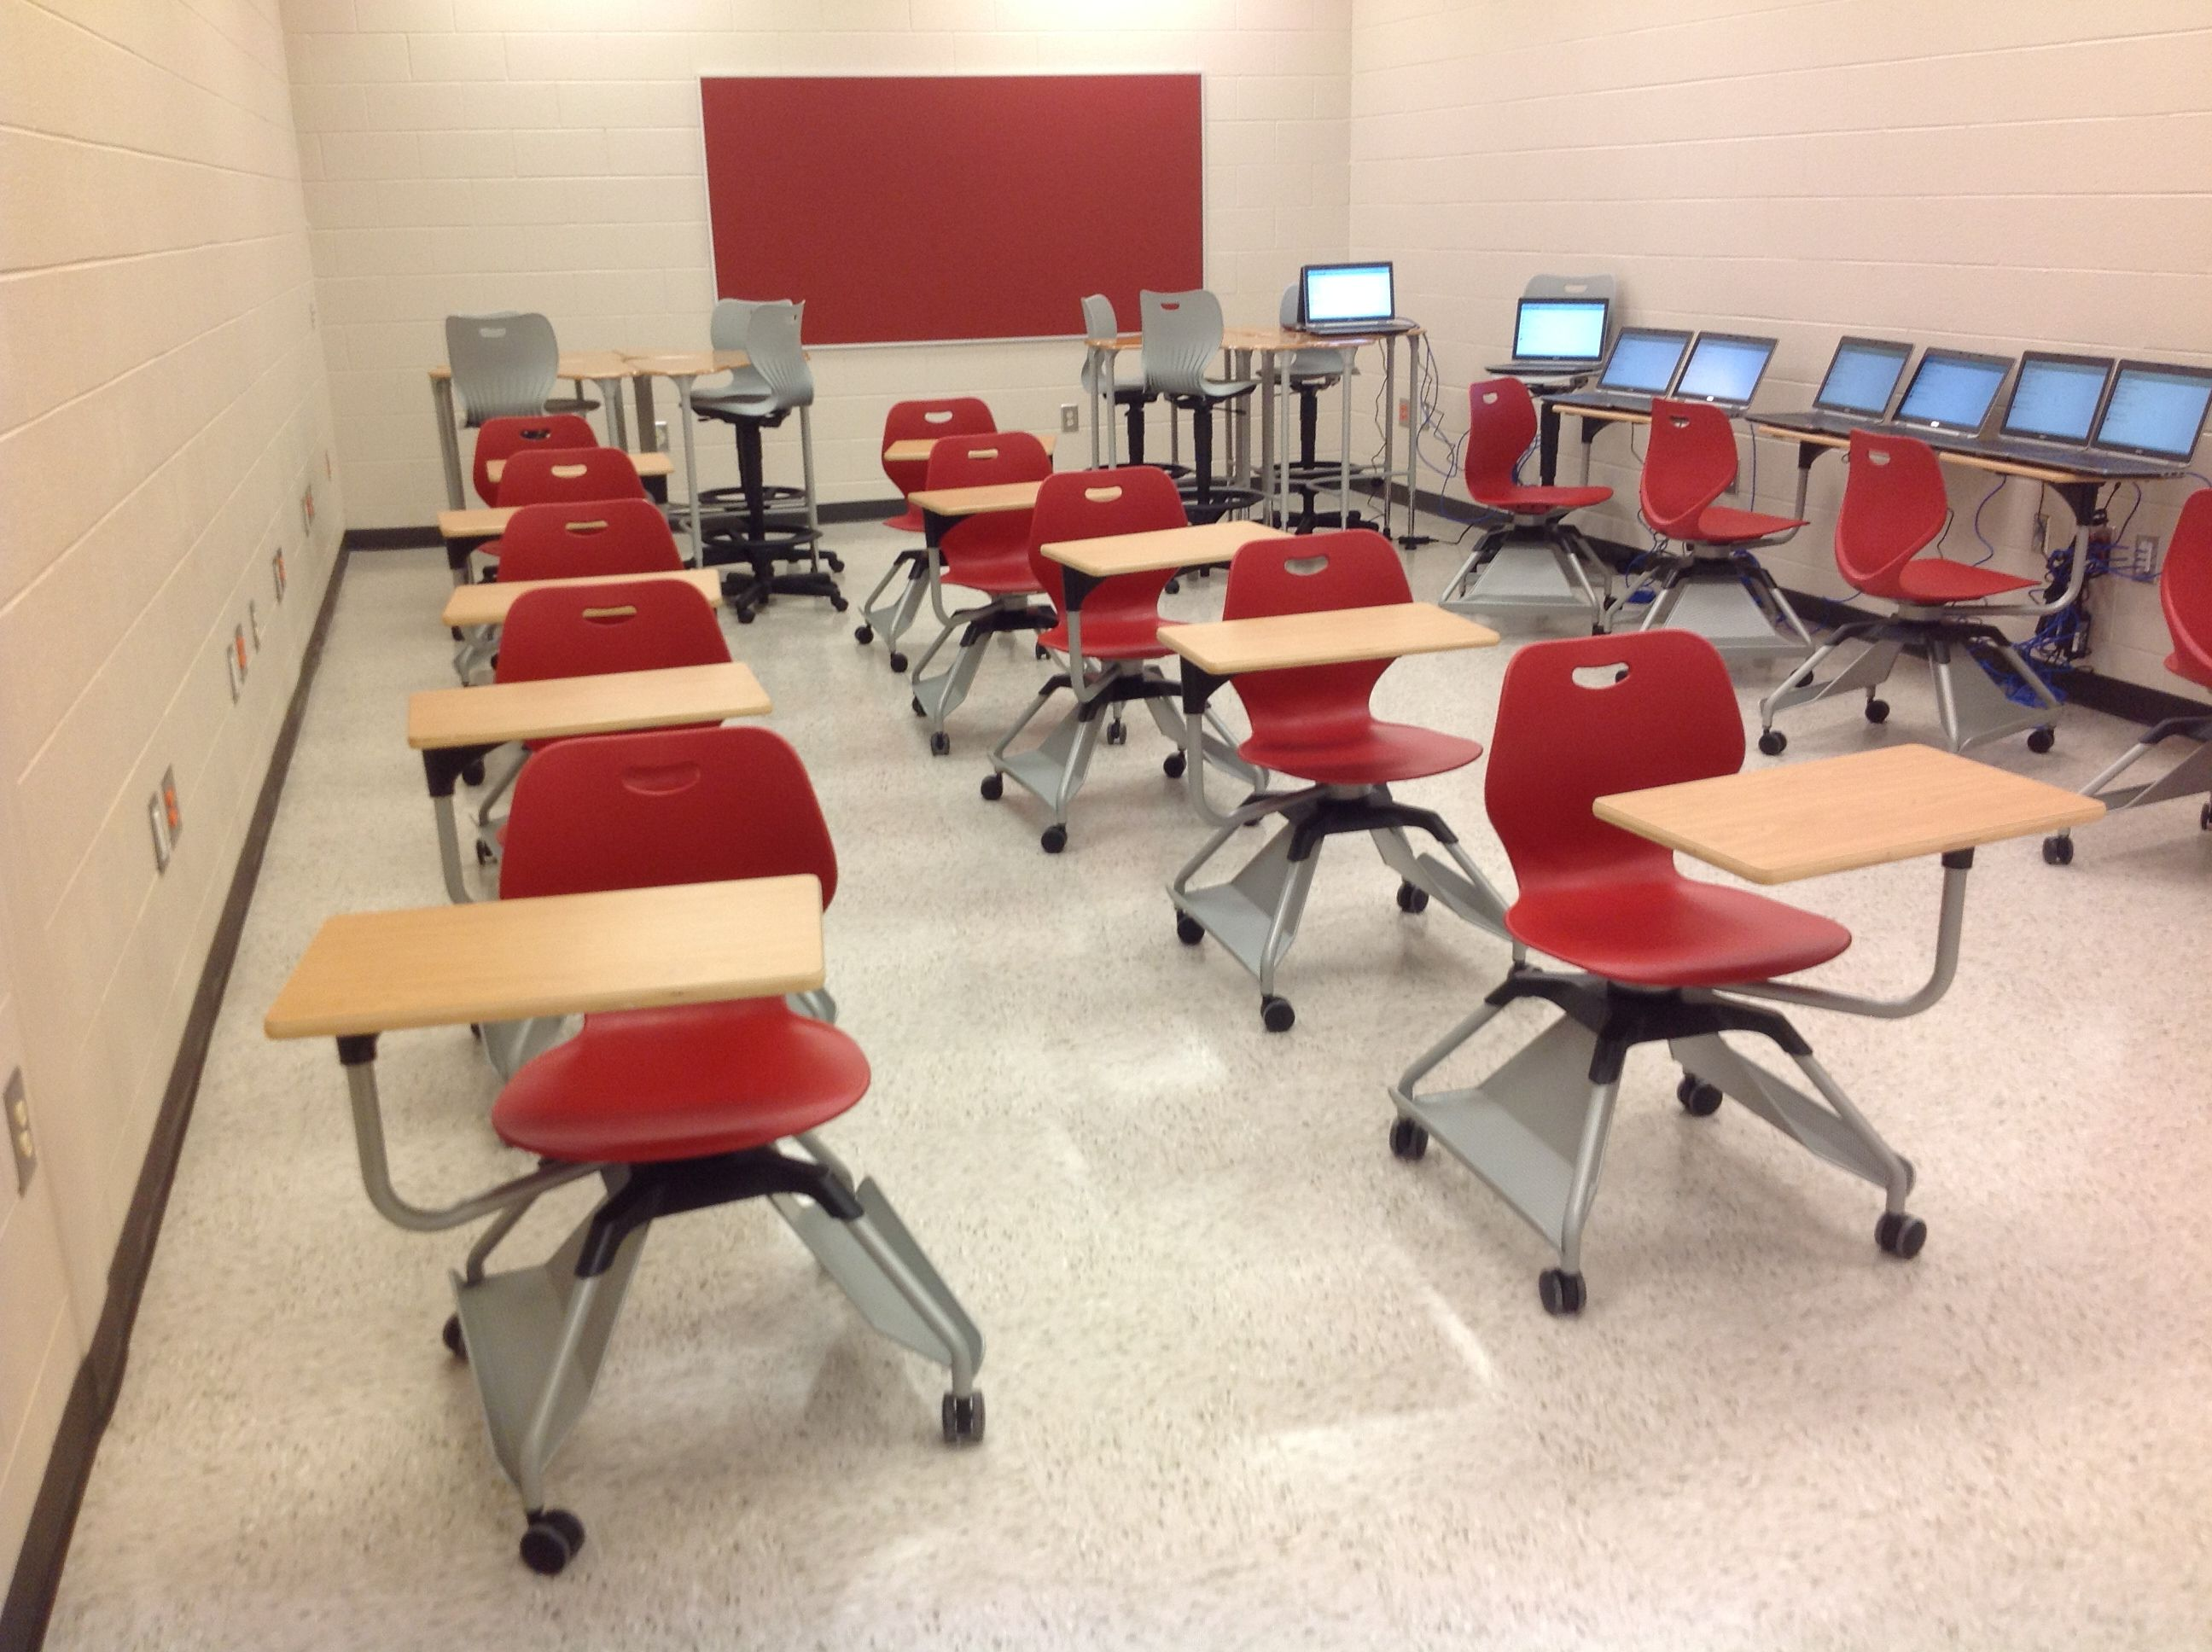 Classrooms At Redbud Elementary School Learn2 Seating By Kifurniture